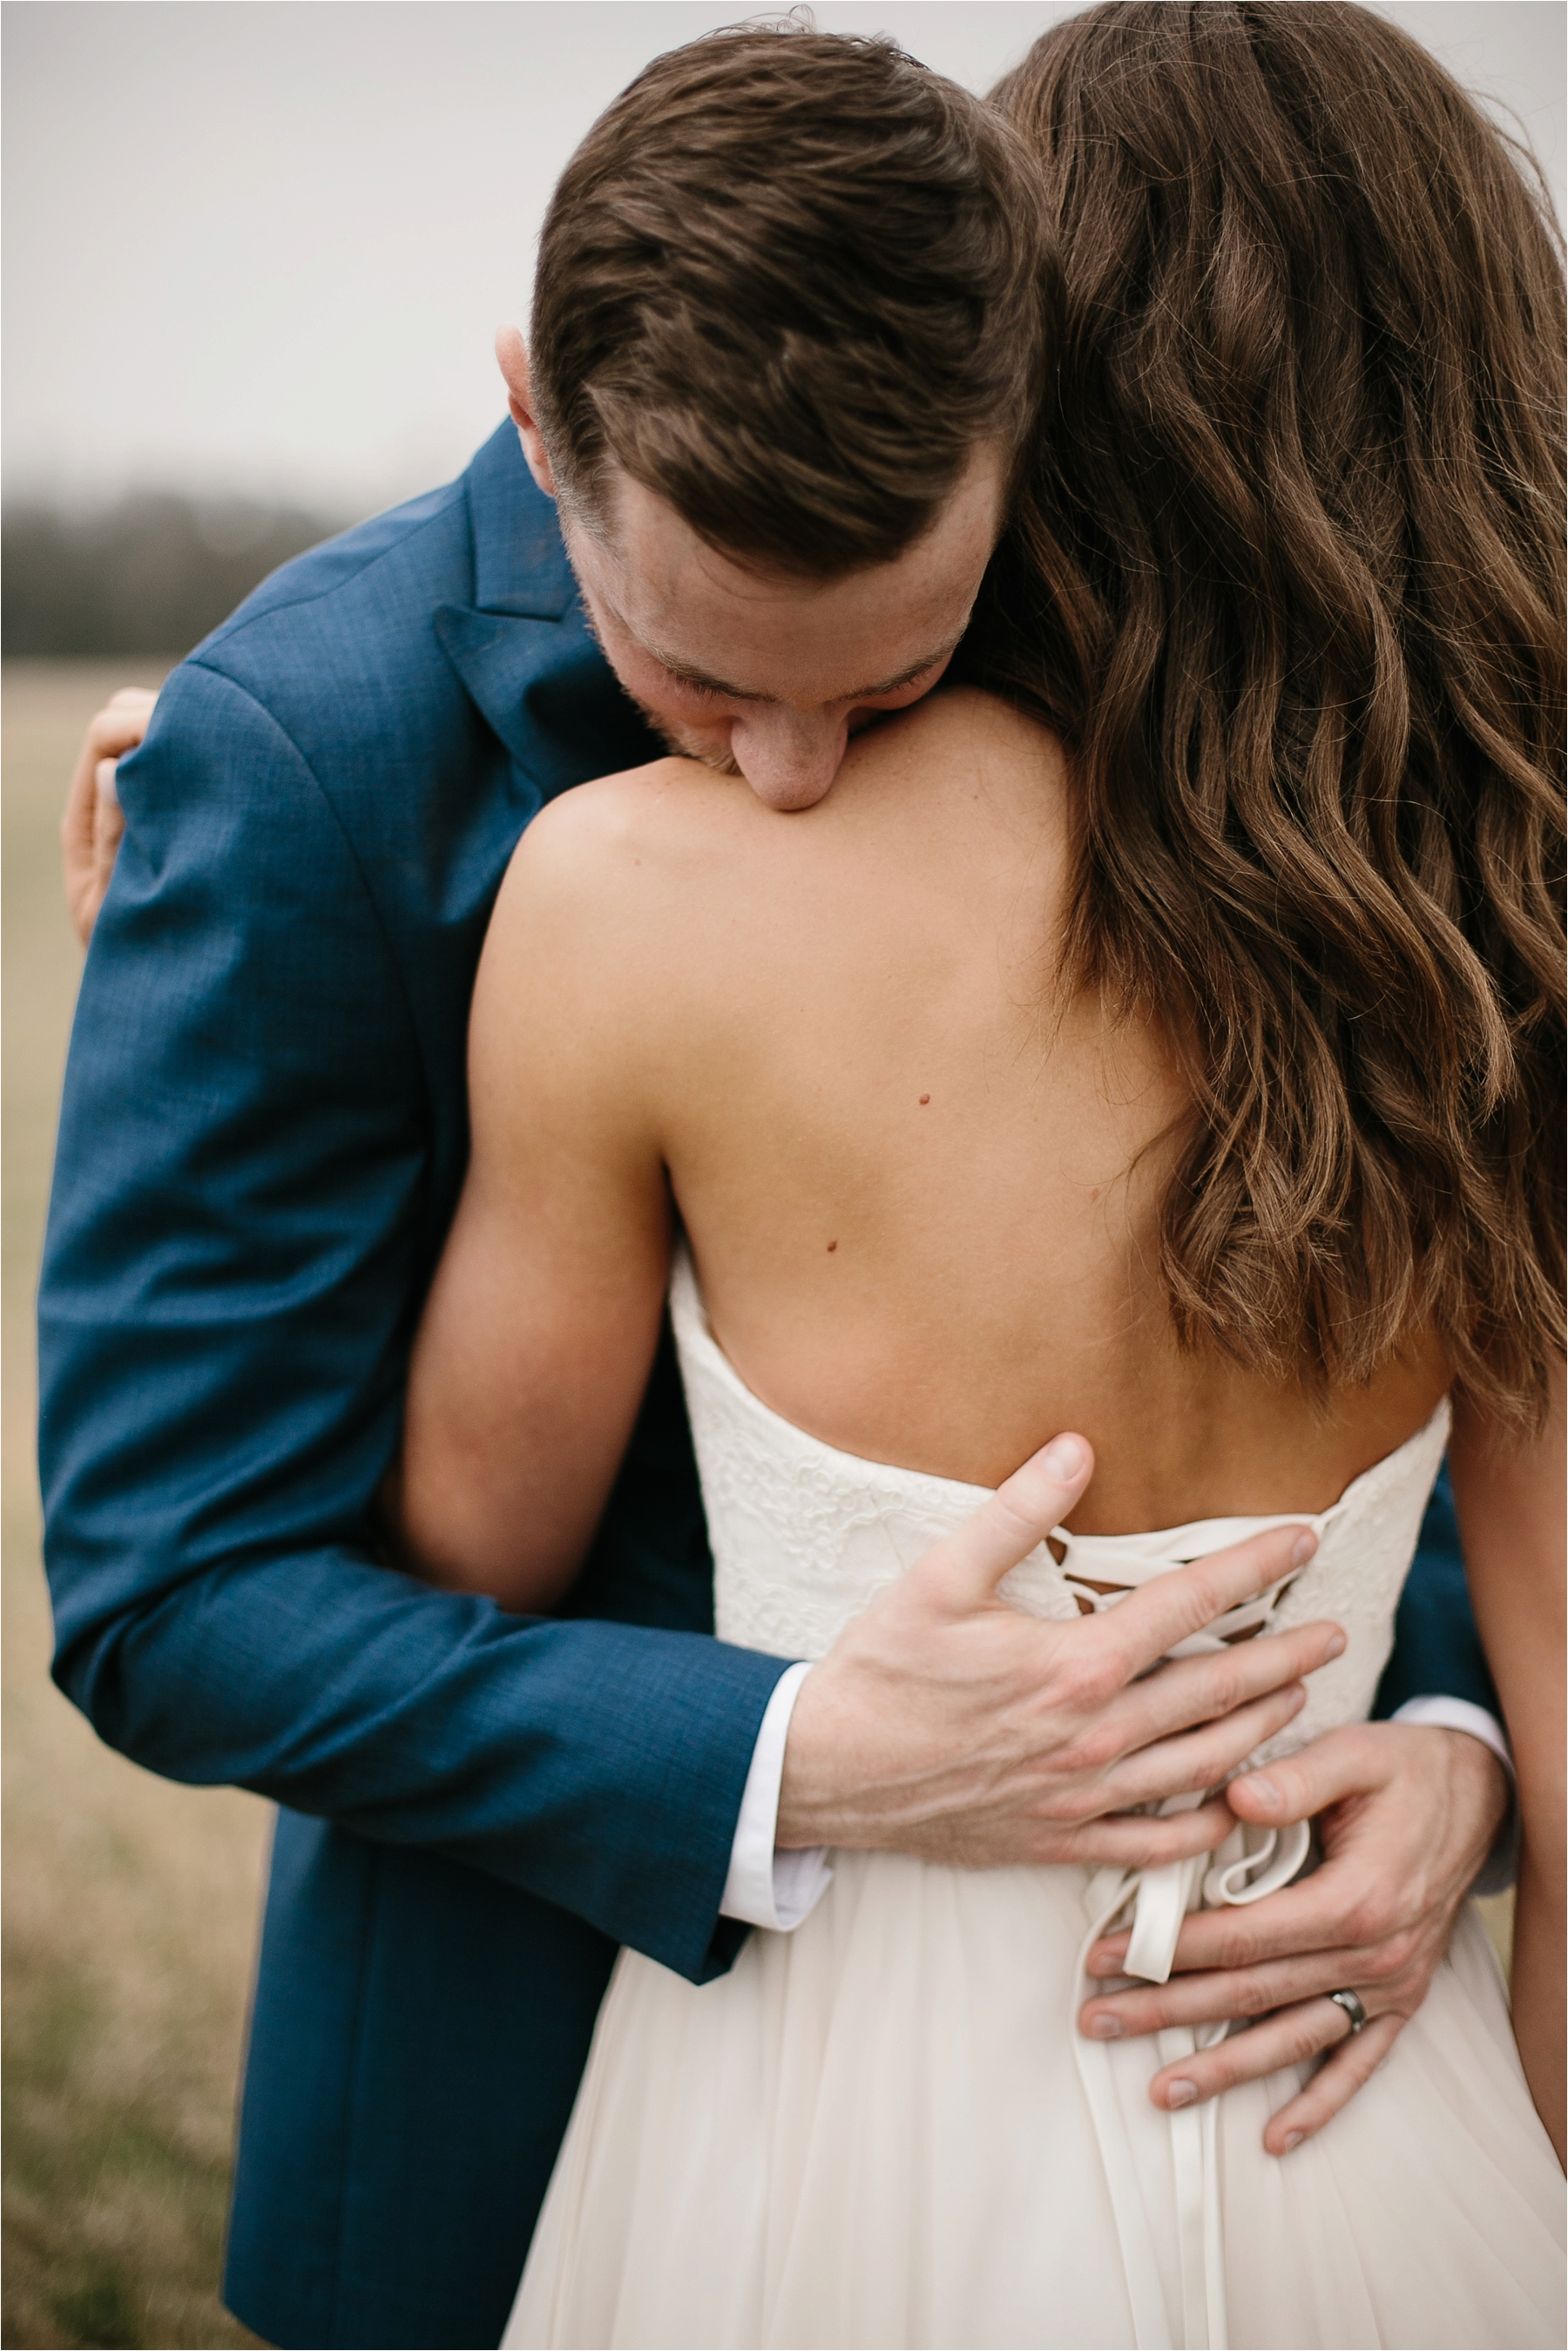 Lauren + Matt __ an intimate, emotional, blush pink, navy blue, and greenery toned wedding accents at the Brooks at Weatherford by North Texas Wedding Photographer Rachel Meagan Photography065